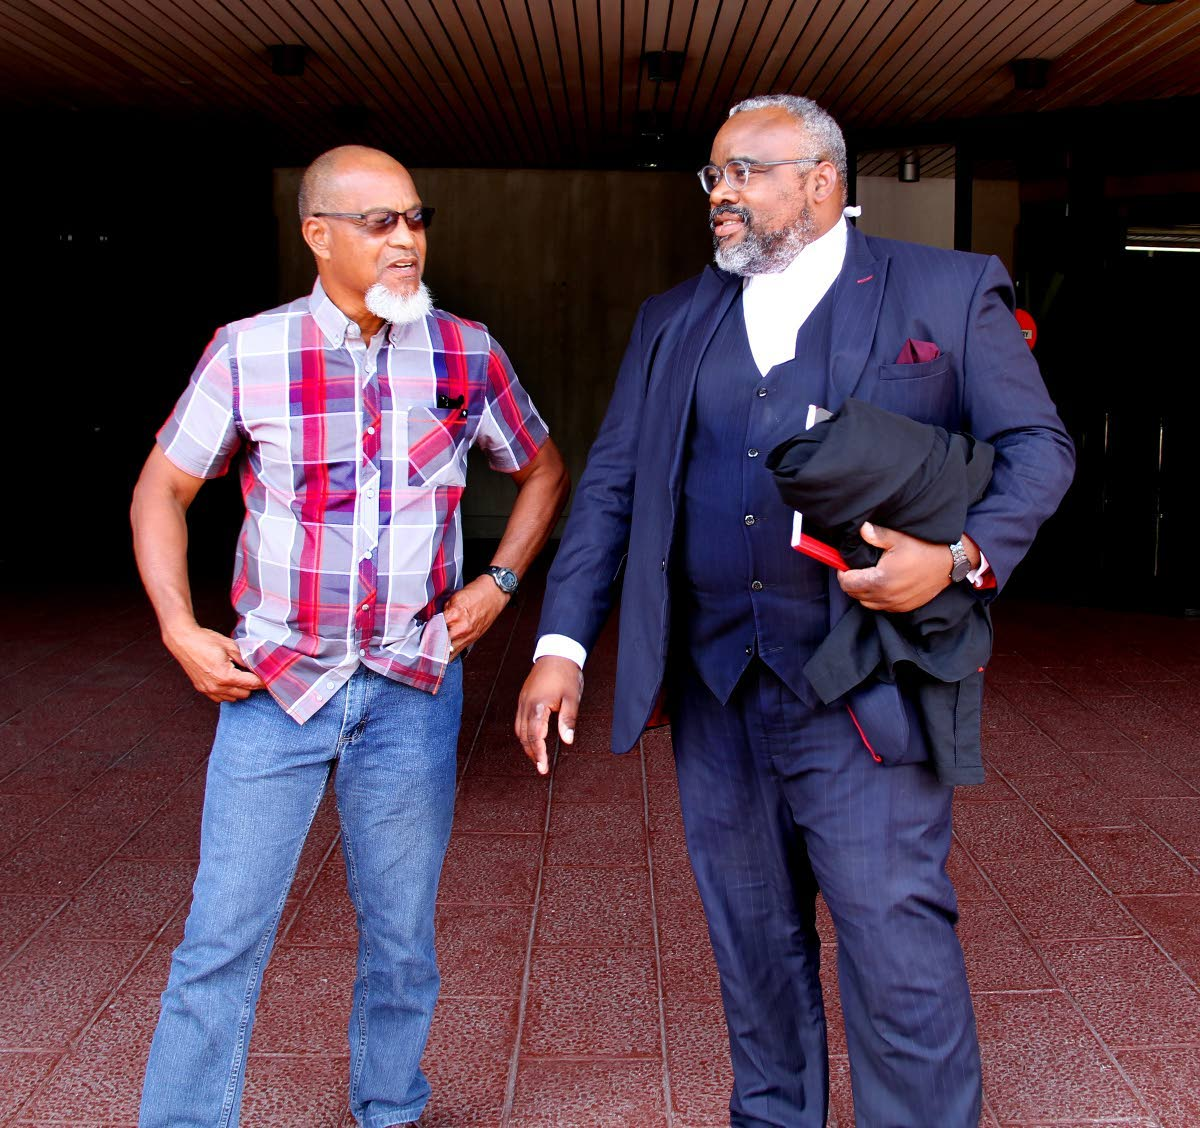 FLASHBACK : In this March 20 file photo, Super League president Keith Look Loy, left, and his attorney Matthew Gayle chat at the Hall of Justice, Port of Spain, after he scored a victory against the TT Football Association.